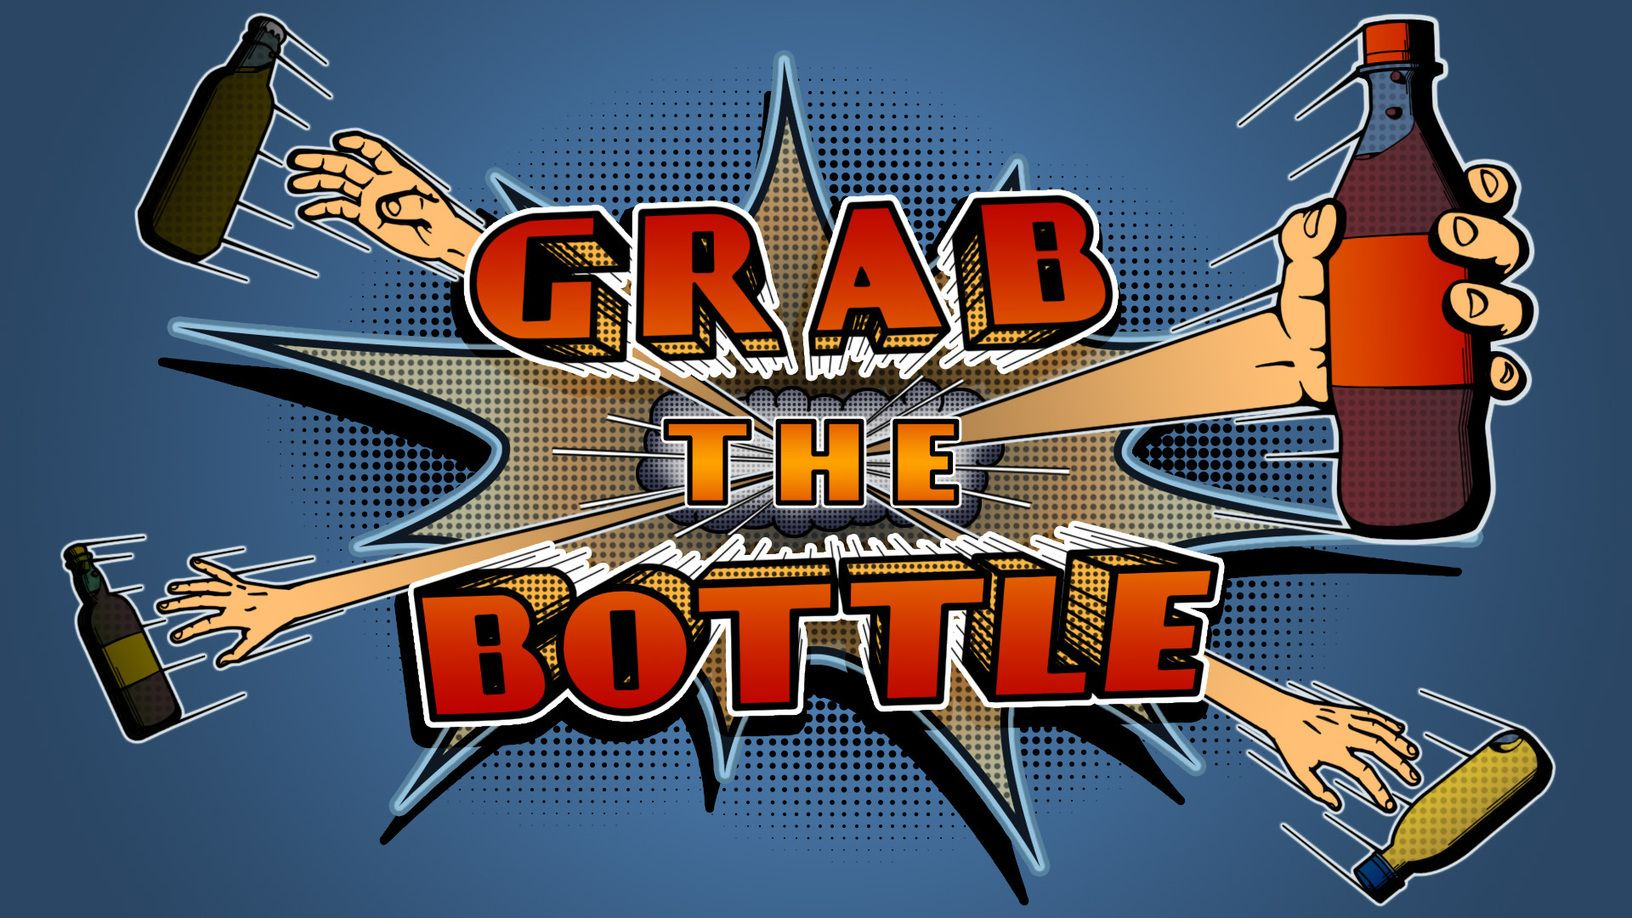 Grab The Bottle APK Mod v1.5 [Paid] Android game